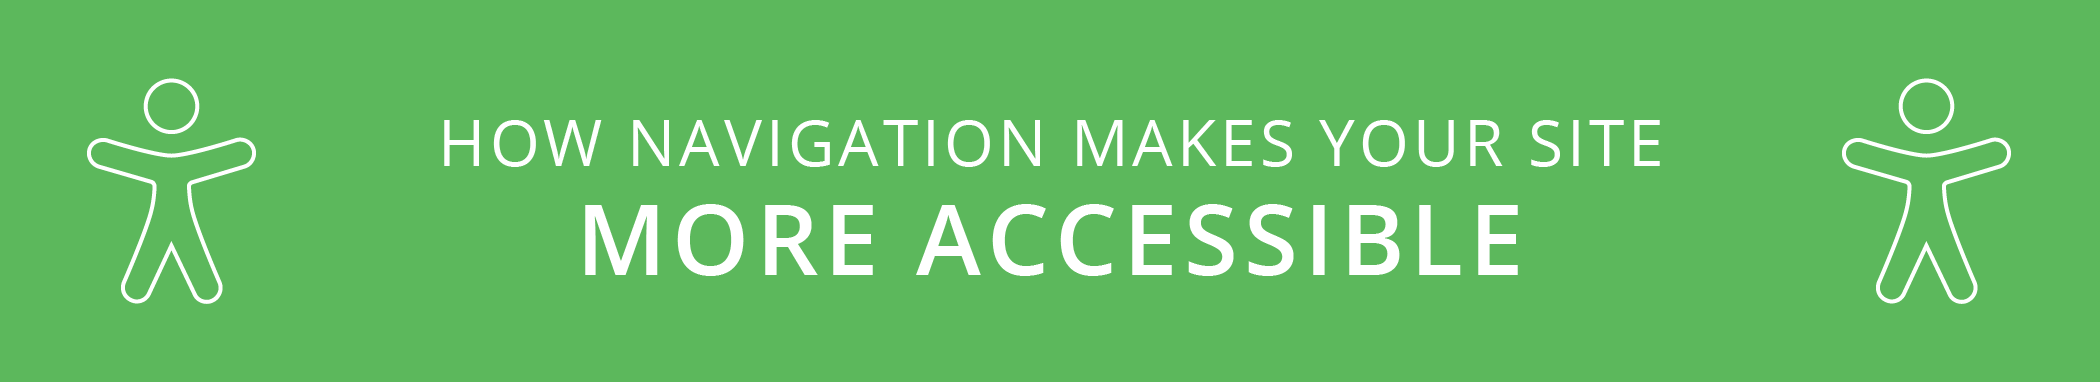 How Navigation Makes Your Site More Accessible